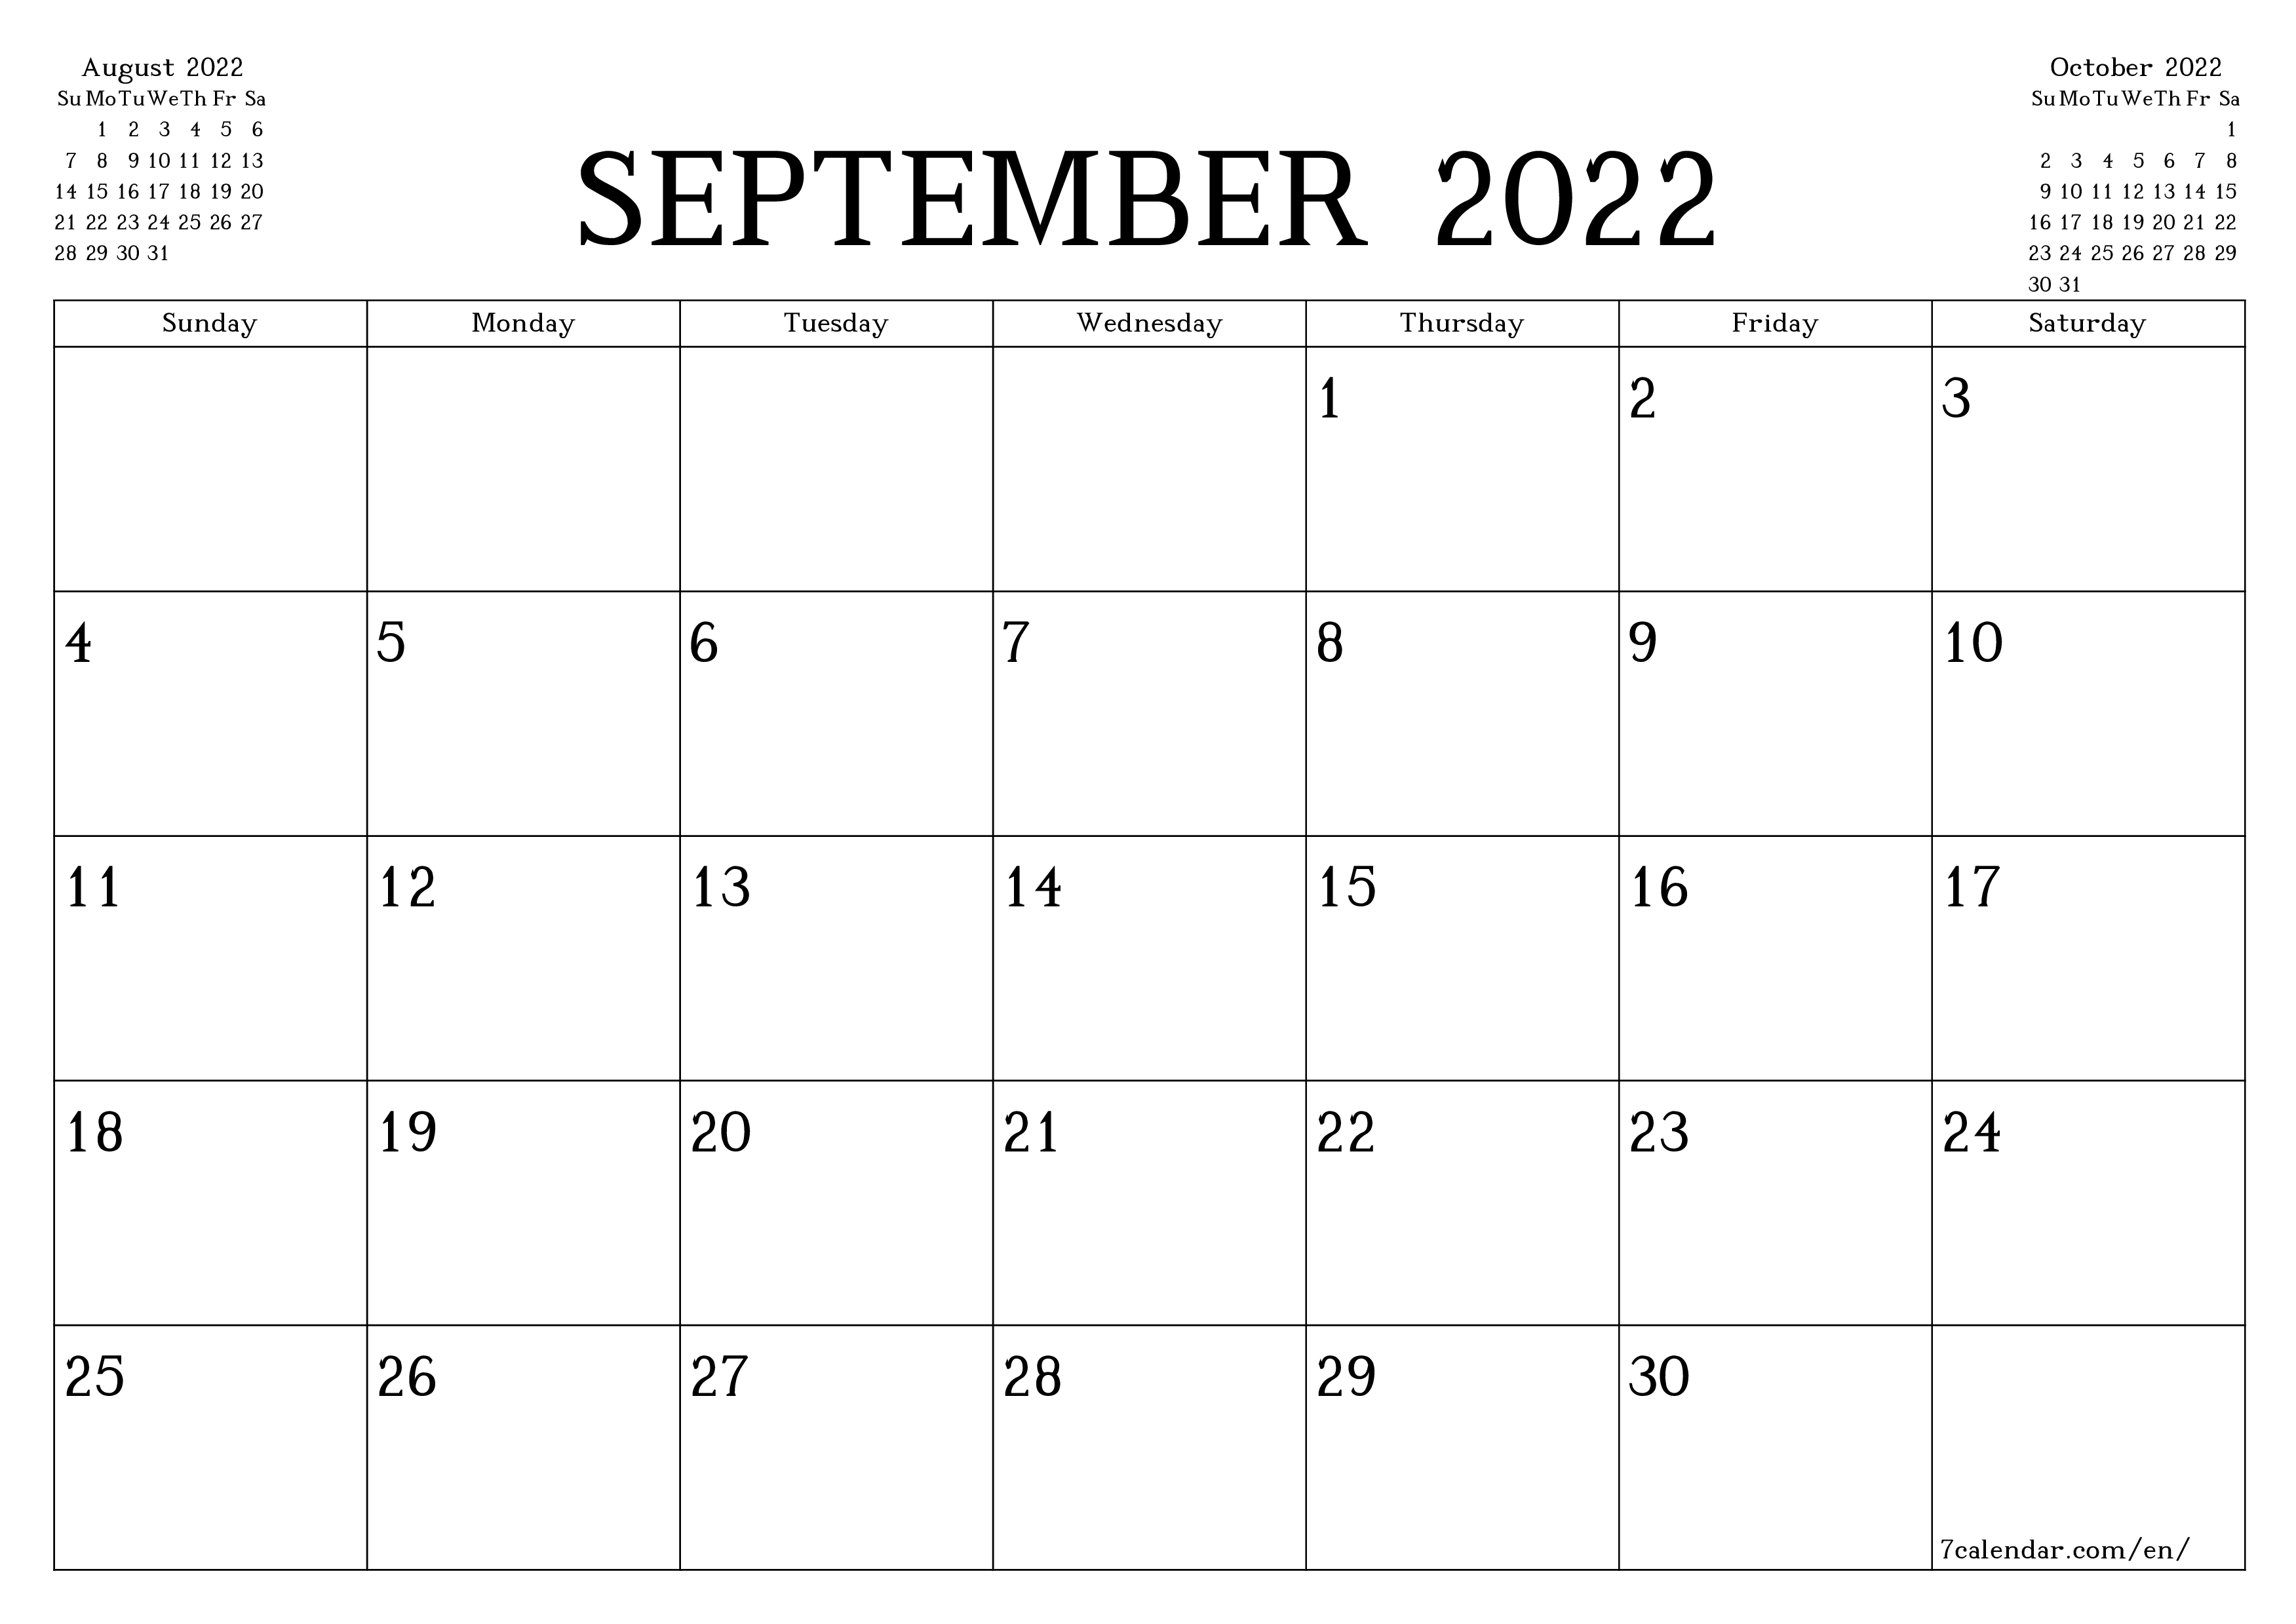 Blank monthly calendar planner for month September 2022 with notes save and print to PDF  - 7calendar.com